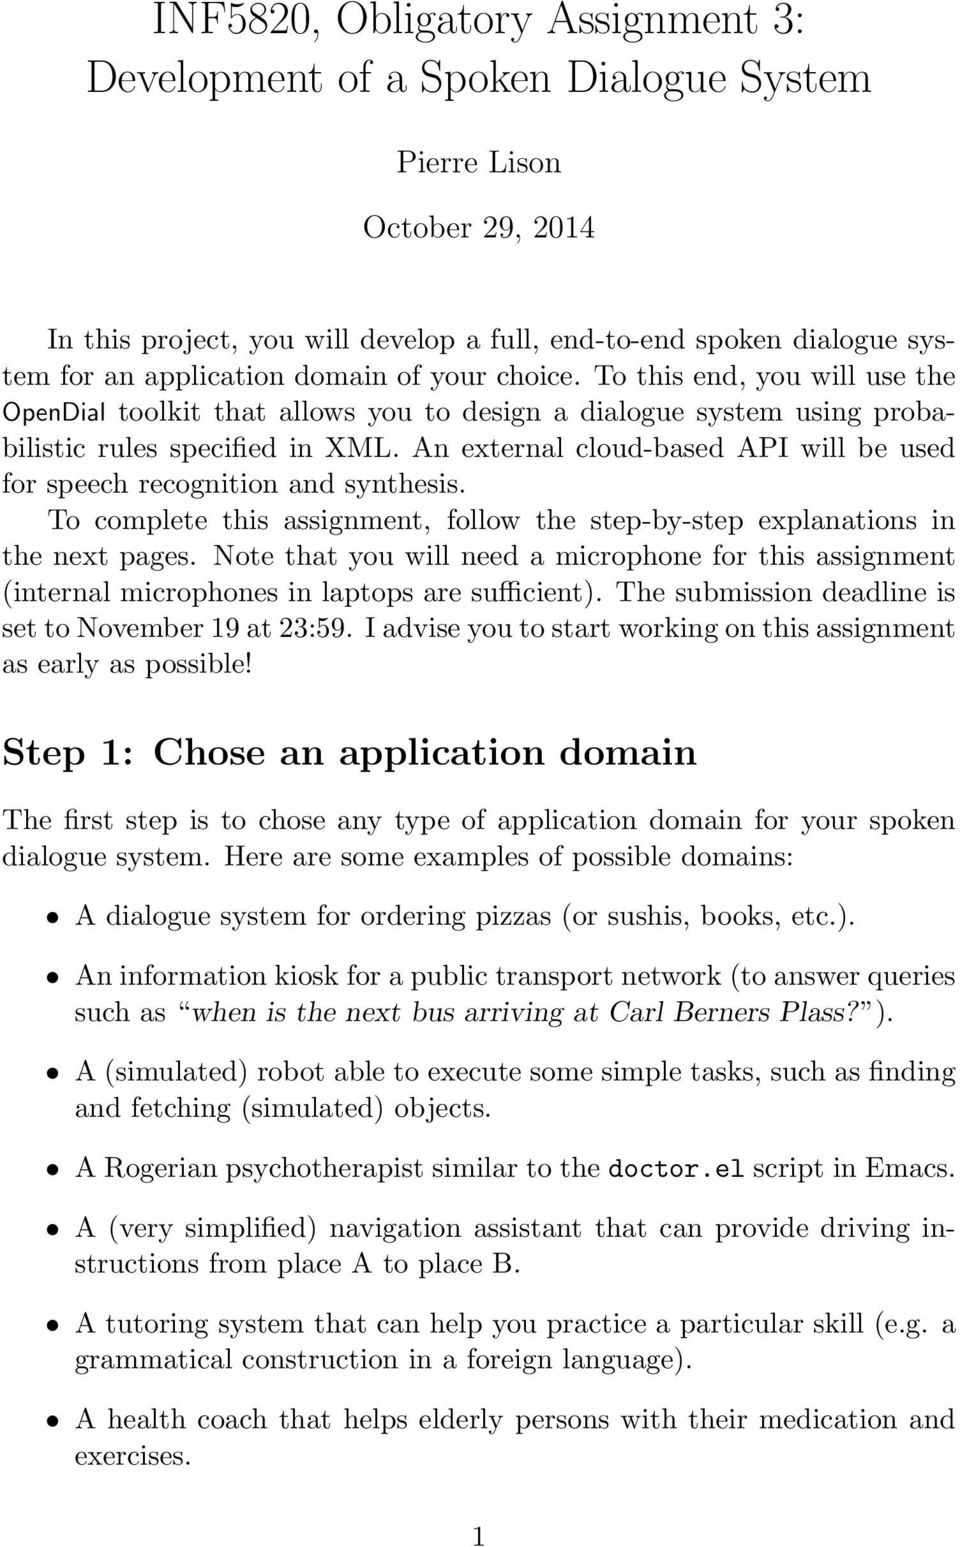 An external cloud-based API will be used for speech recognition and synthesis. To complete this assignment, follow the step-by-step explanations in the next pages.